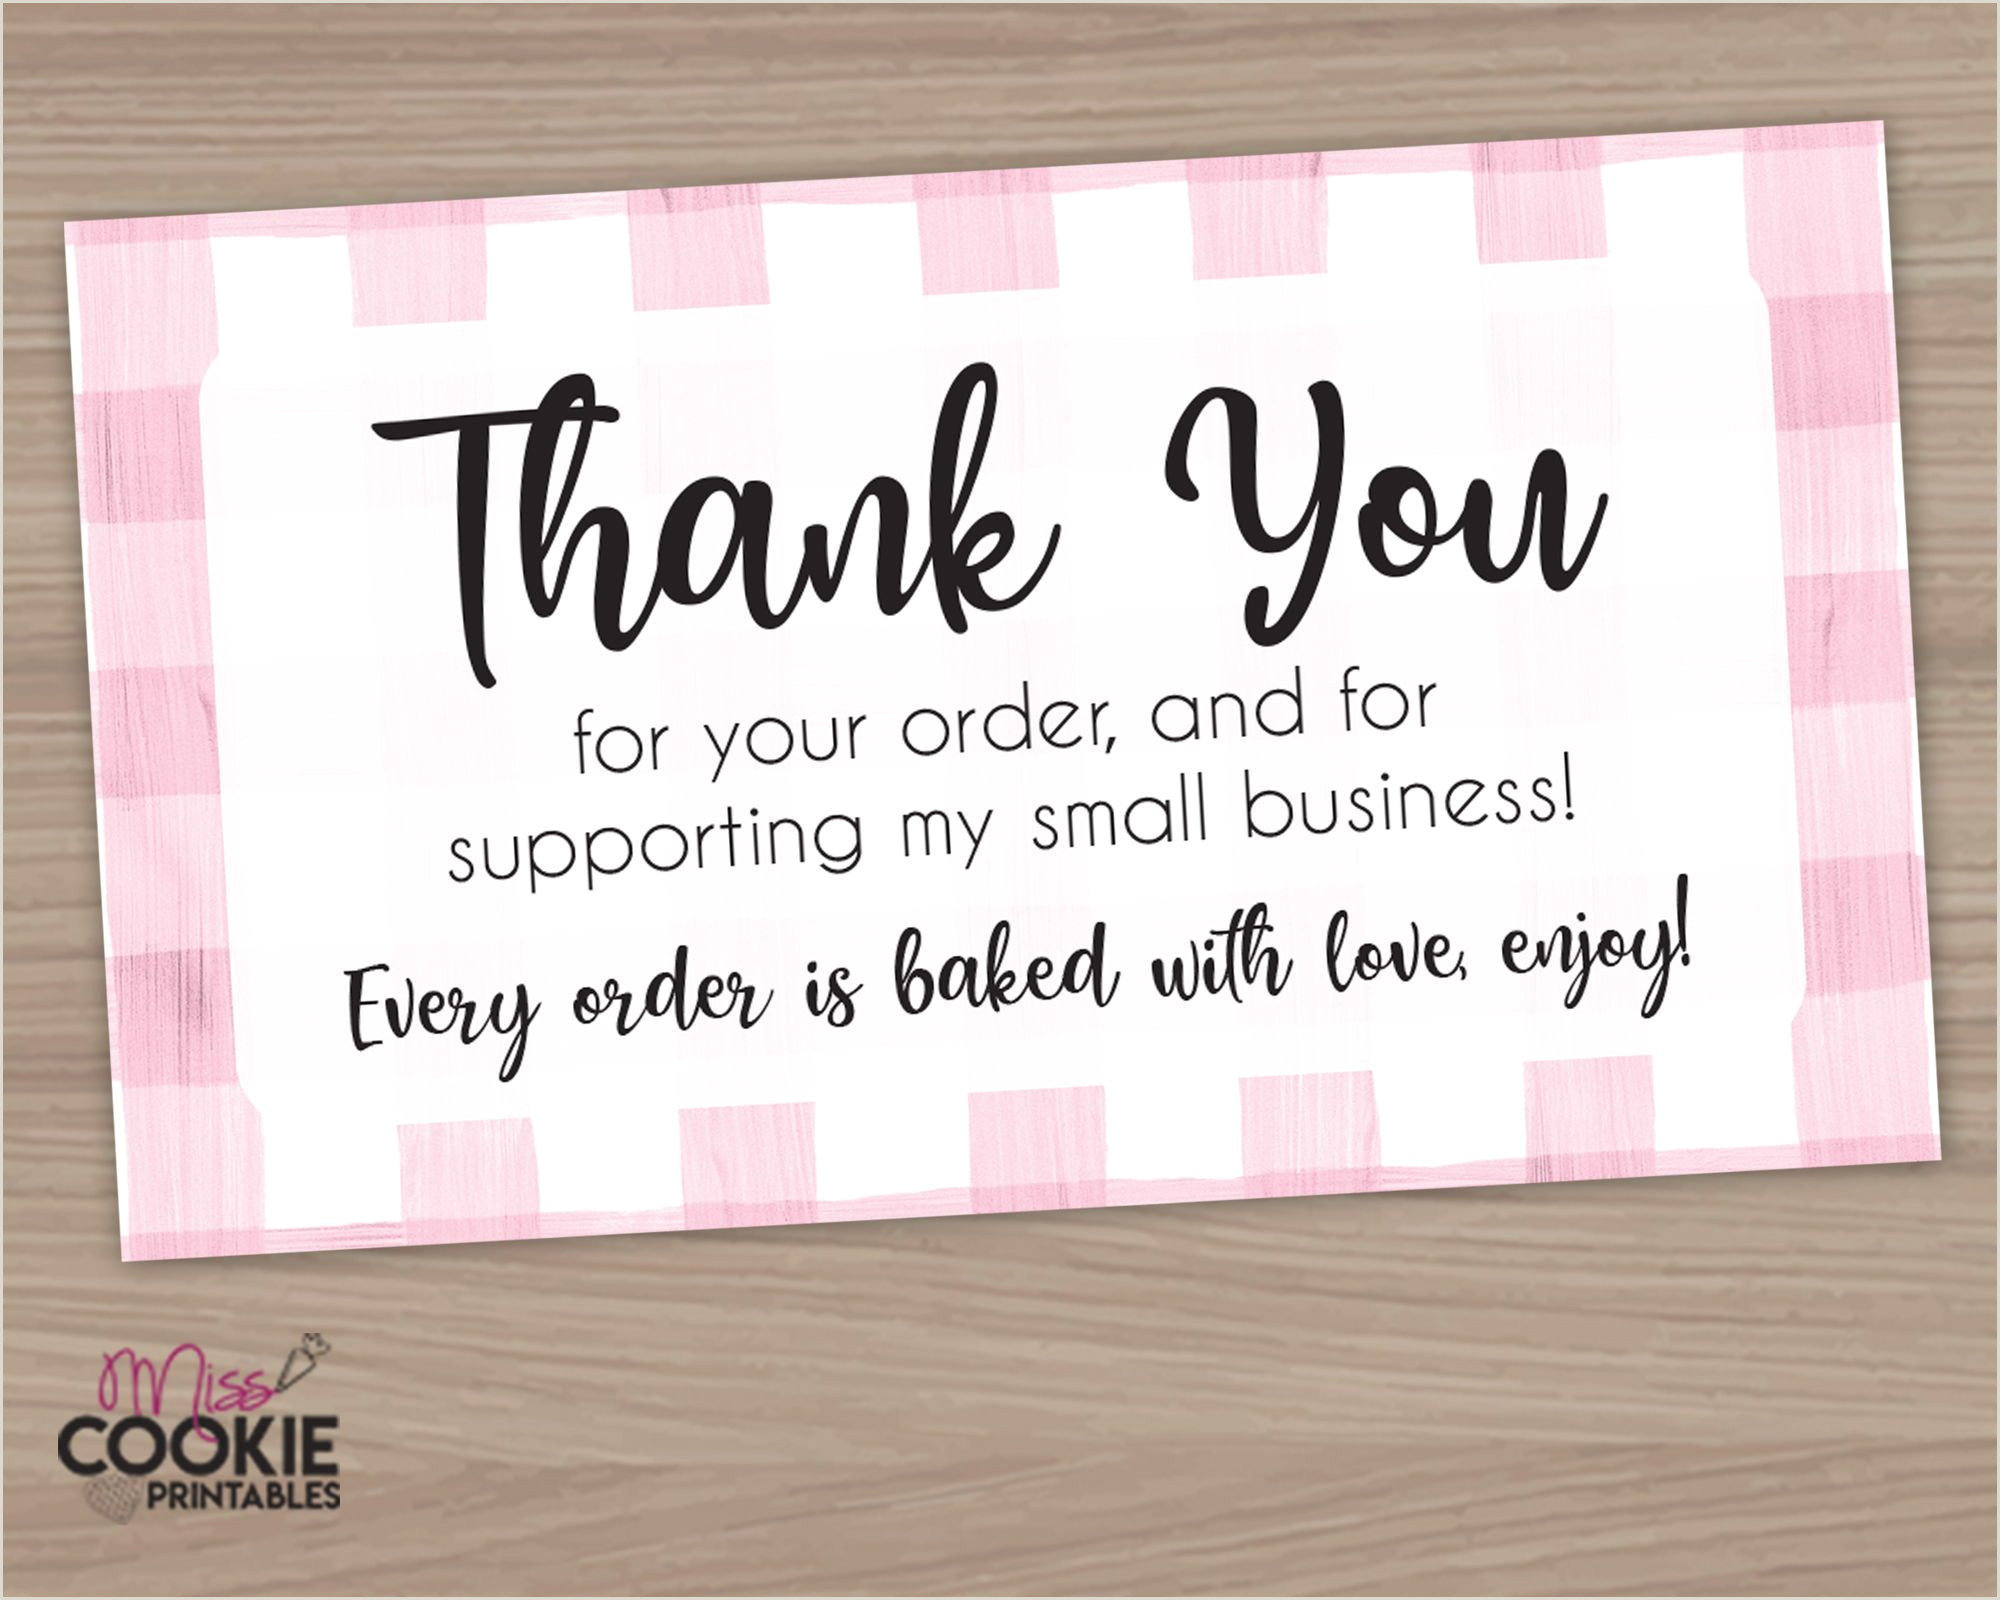 Best Business Cards For Soap Labels Printable Thank You For Your Order And For Supporting My